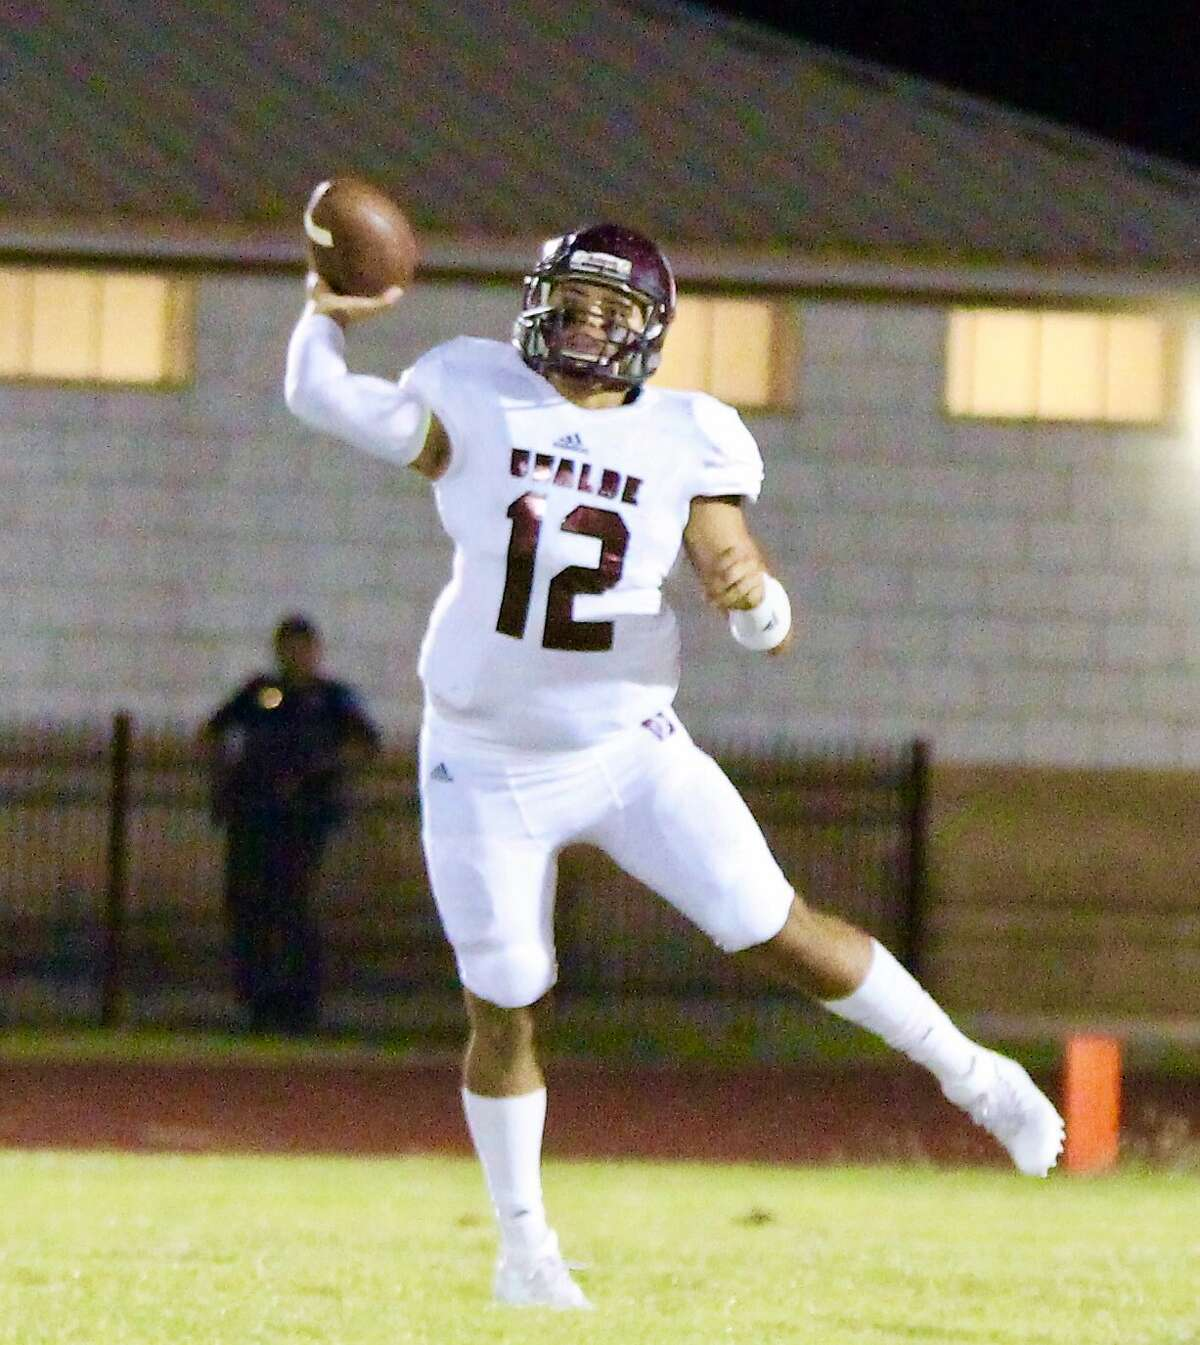 Michael Mata - Uvalde Coyotes, Sr. Mata was the area's top passer in yardage, completing 195 of 367 passes for 3,150 yards with 29 touchdowns and 13 interceptions.